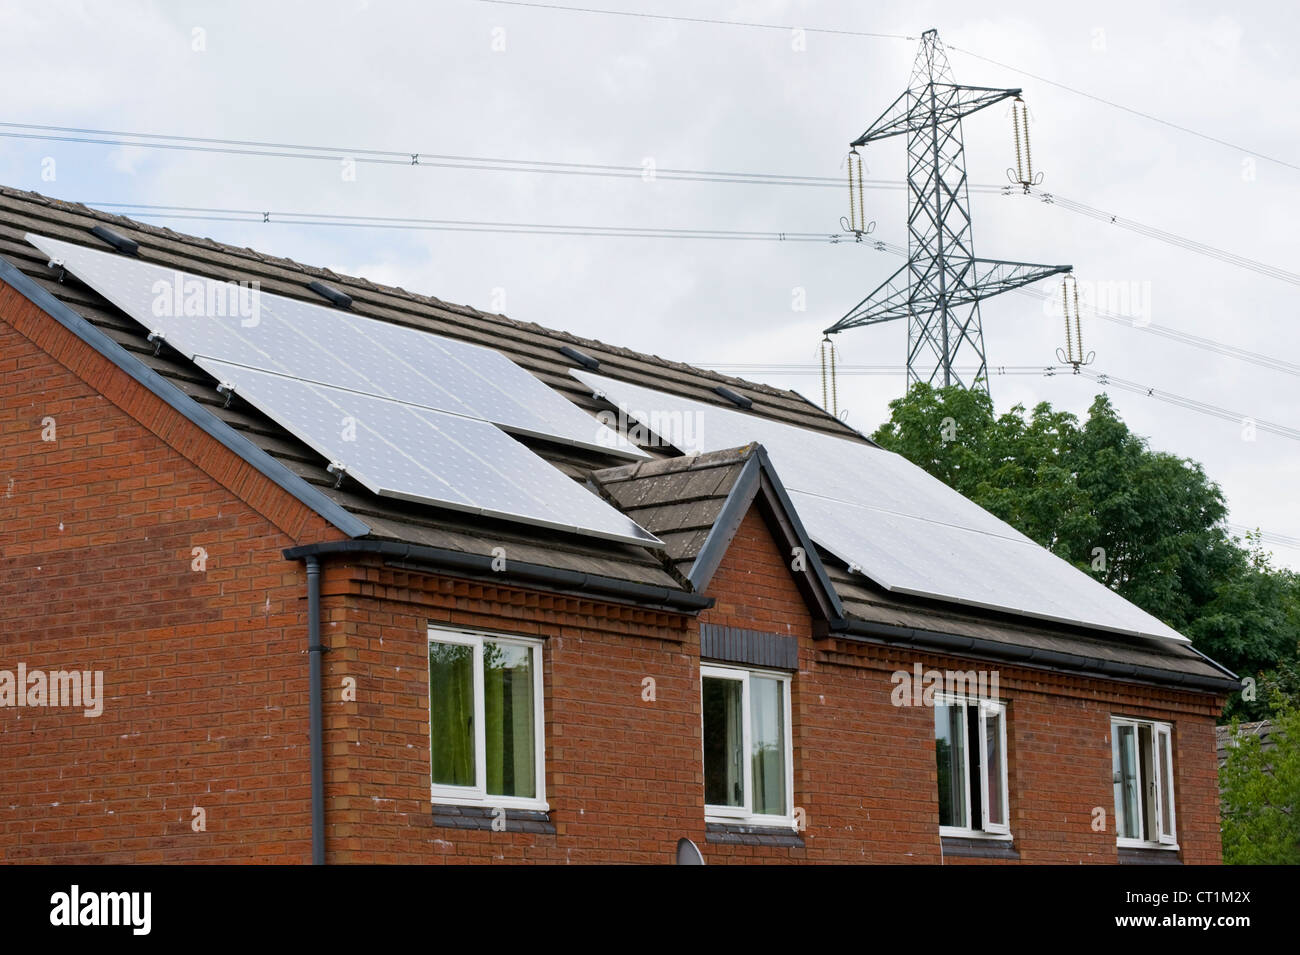 Solar panels on roof of houses in small modern community housing estate Abergavenny, Monmouthshire, South Wales, - Stock Image